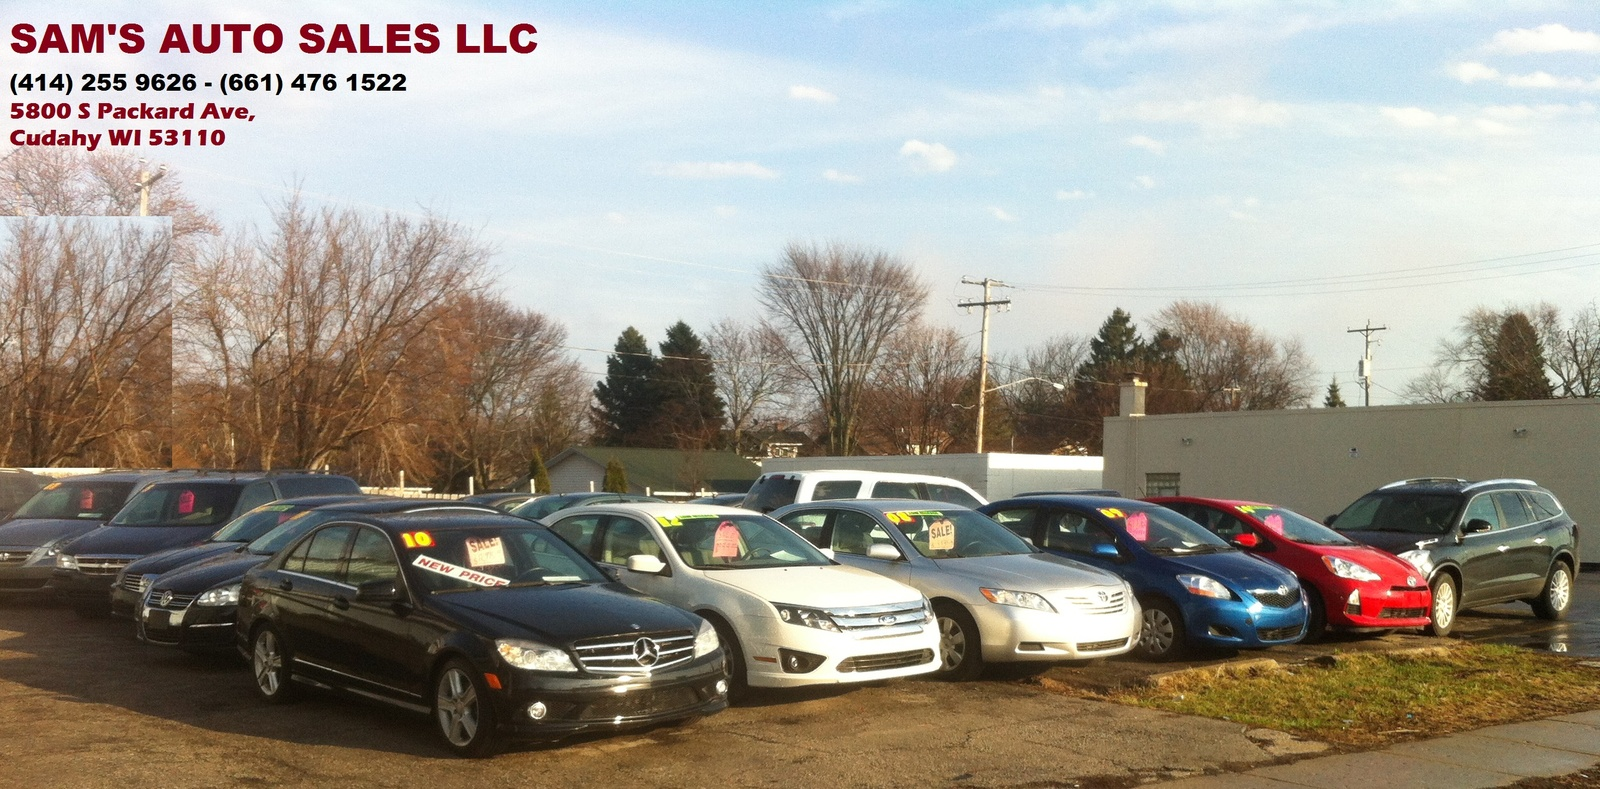 Hyundai Dealers Mn >> Sam's Auto Sales LLC - Cudahy, WI: Read Consumer reviews, Browse Used and New Cars for Sale